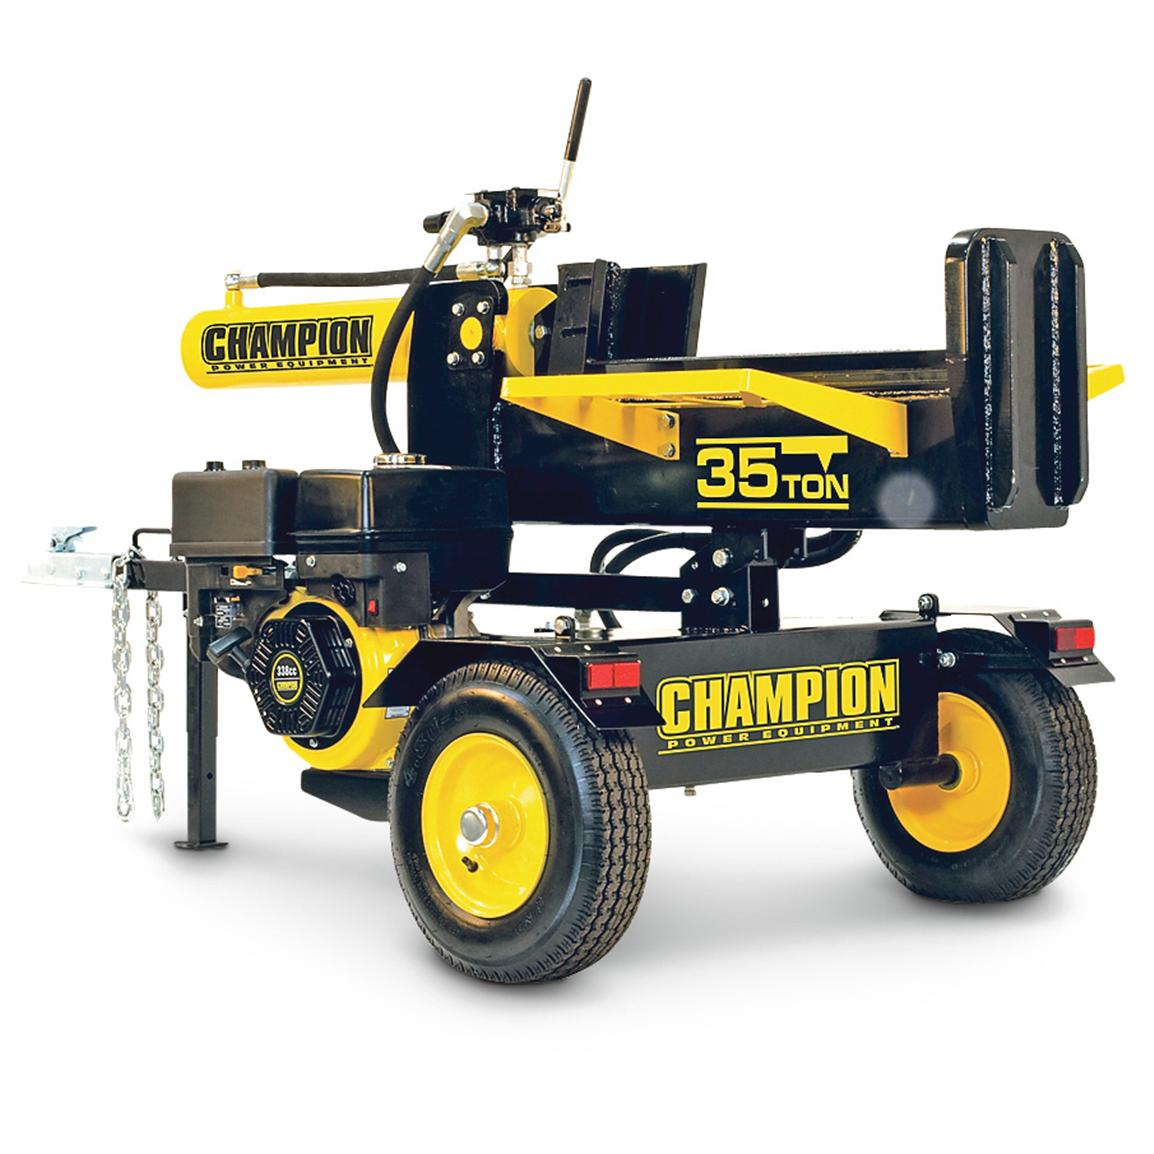 Champion Power Equipment™ 35-ton Hydraulic Log Splitter